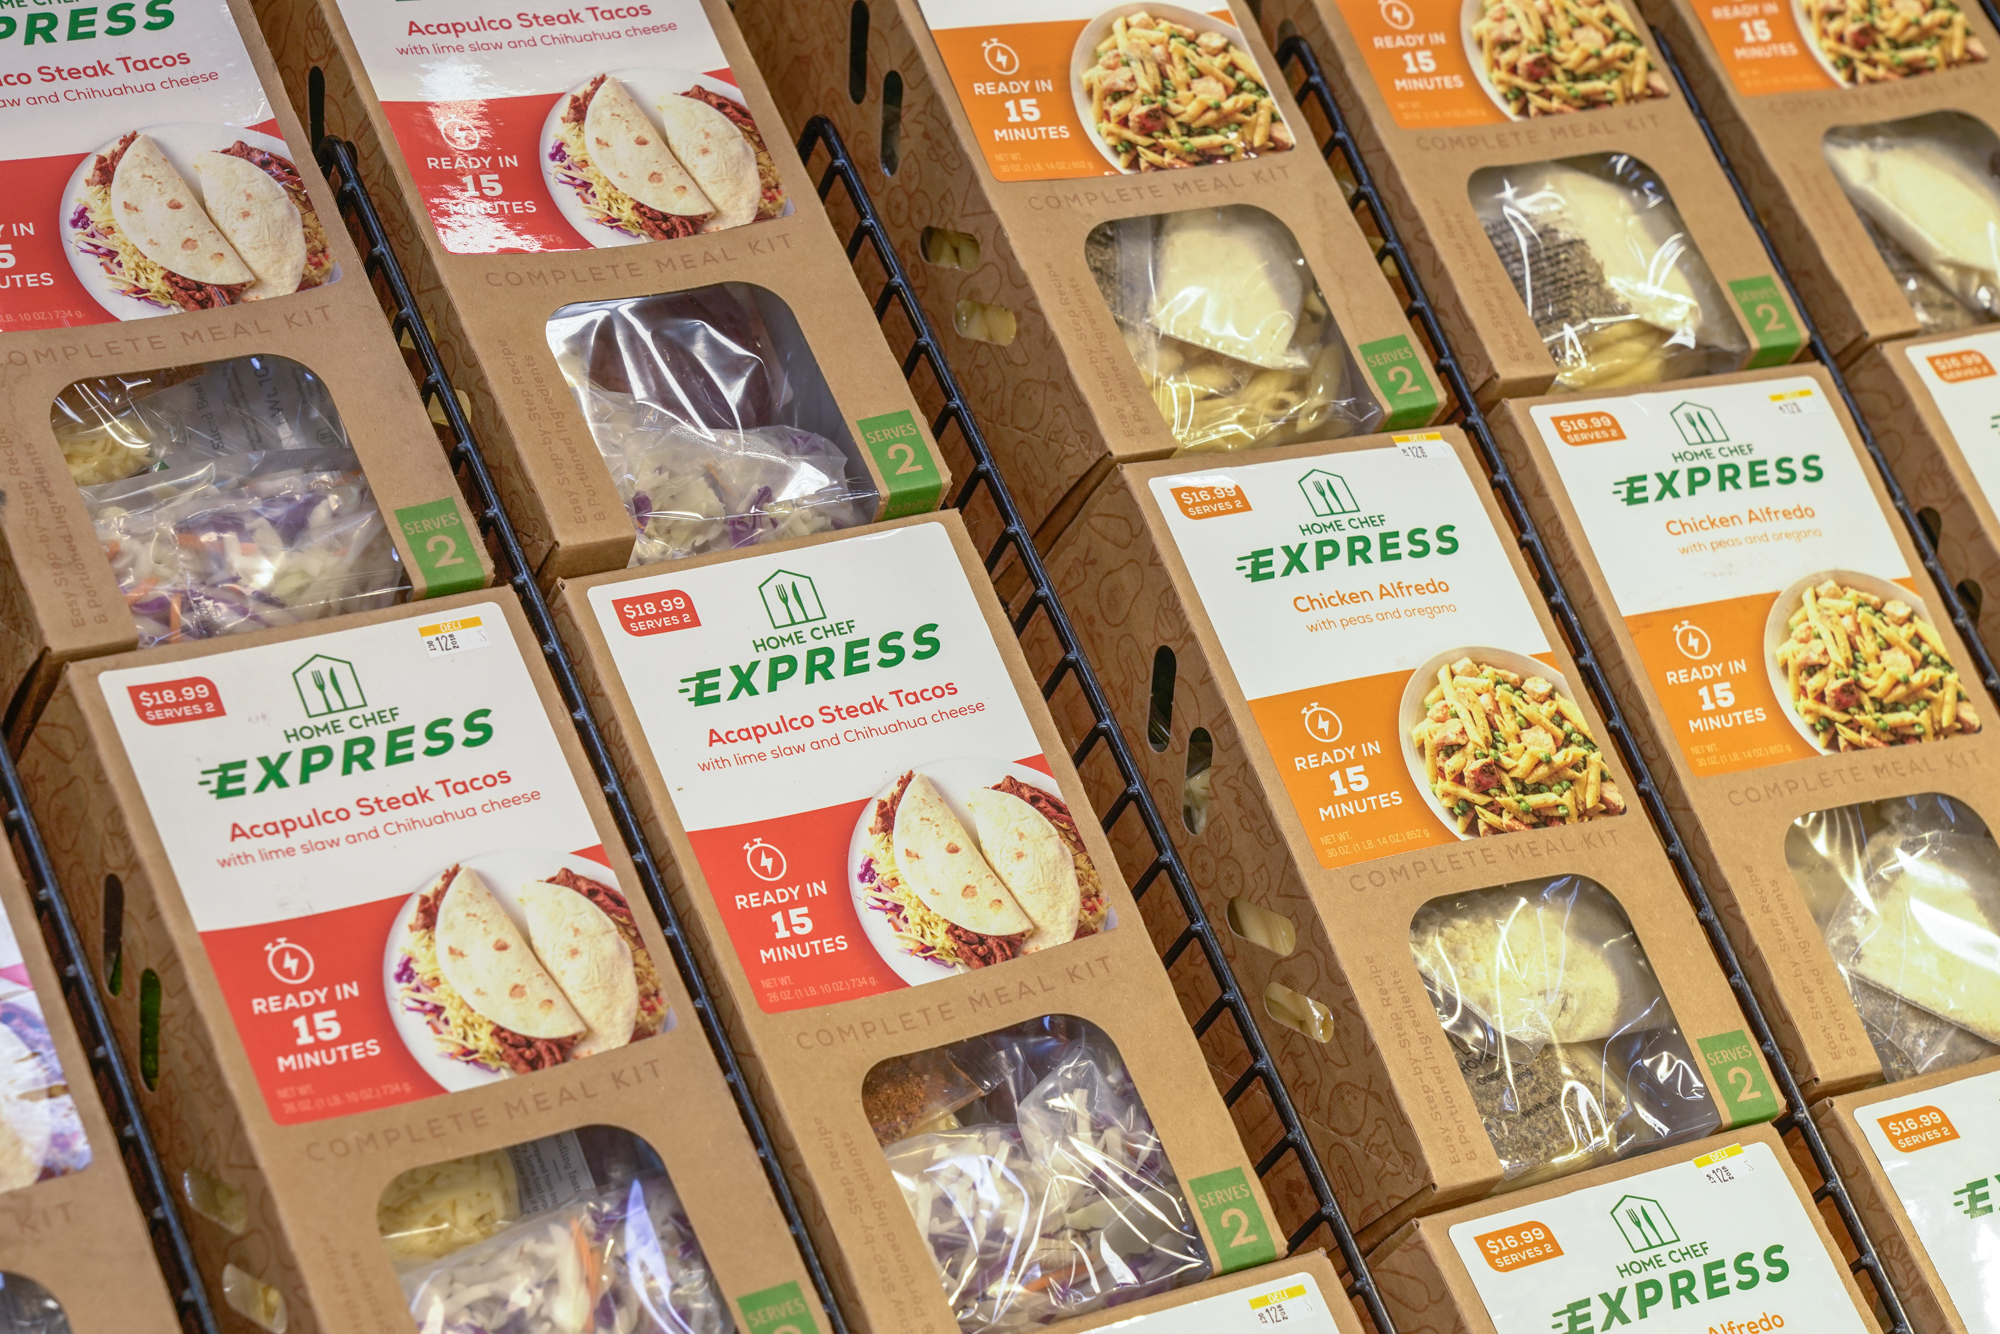 Kroger S Meal Kit Maker Home Chef Reaches Its Dallas Fort Worth Stores